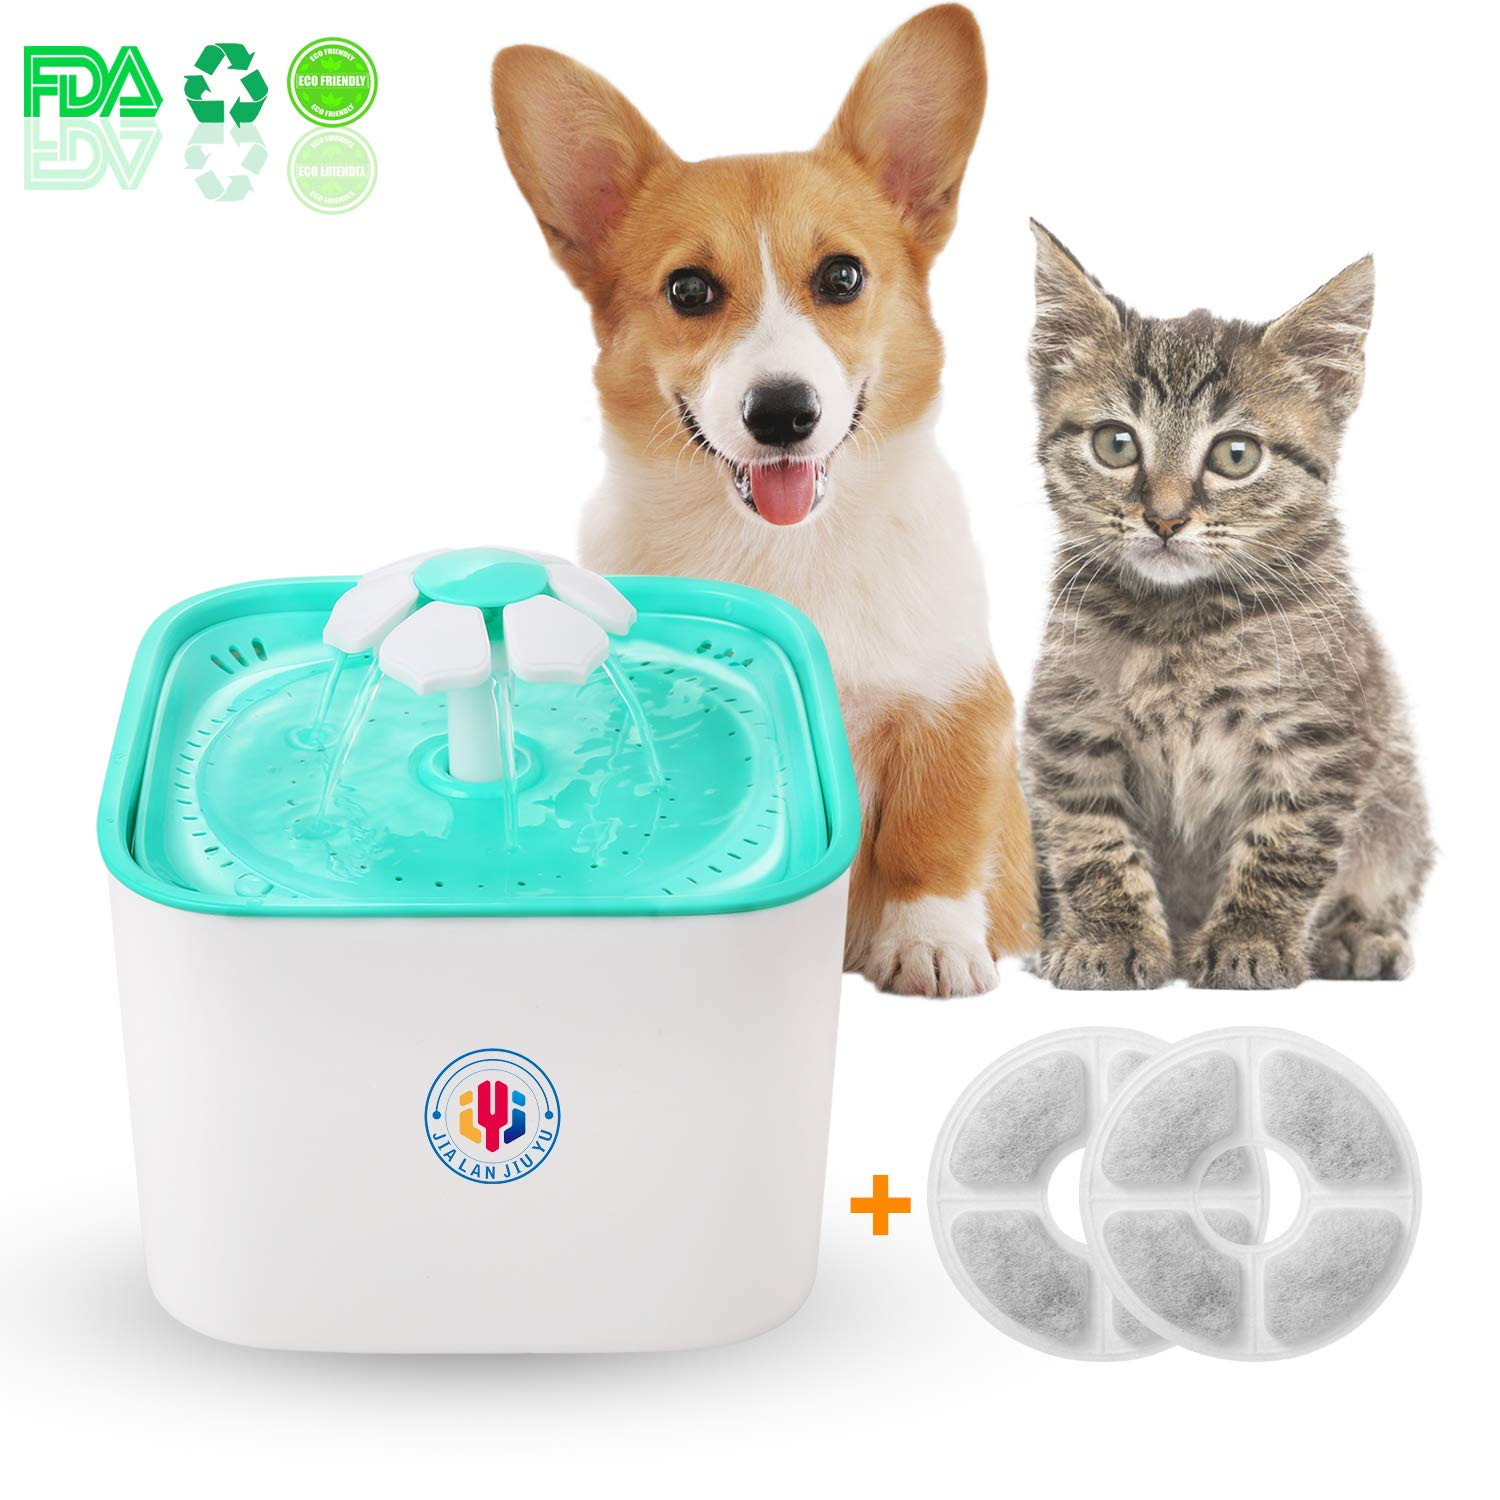 Pet Water Fountain Cat's Dogs Water Dispenser Healthy and Hygienic Drinking Fountain 2L Super Quiet Flower Automatic Electric Water Bowl with 2 Replacement Filters for Dogs Cats Birds and Small Animal